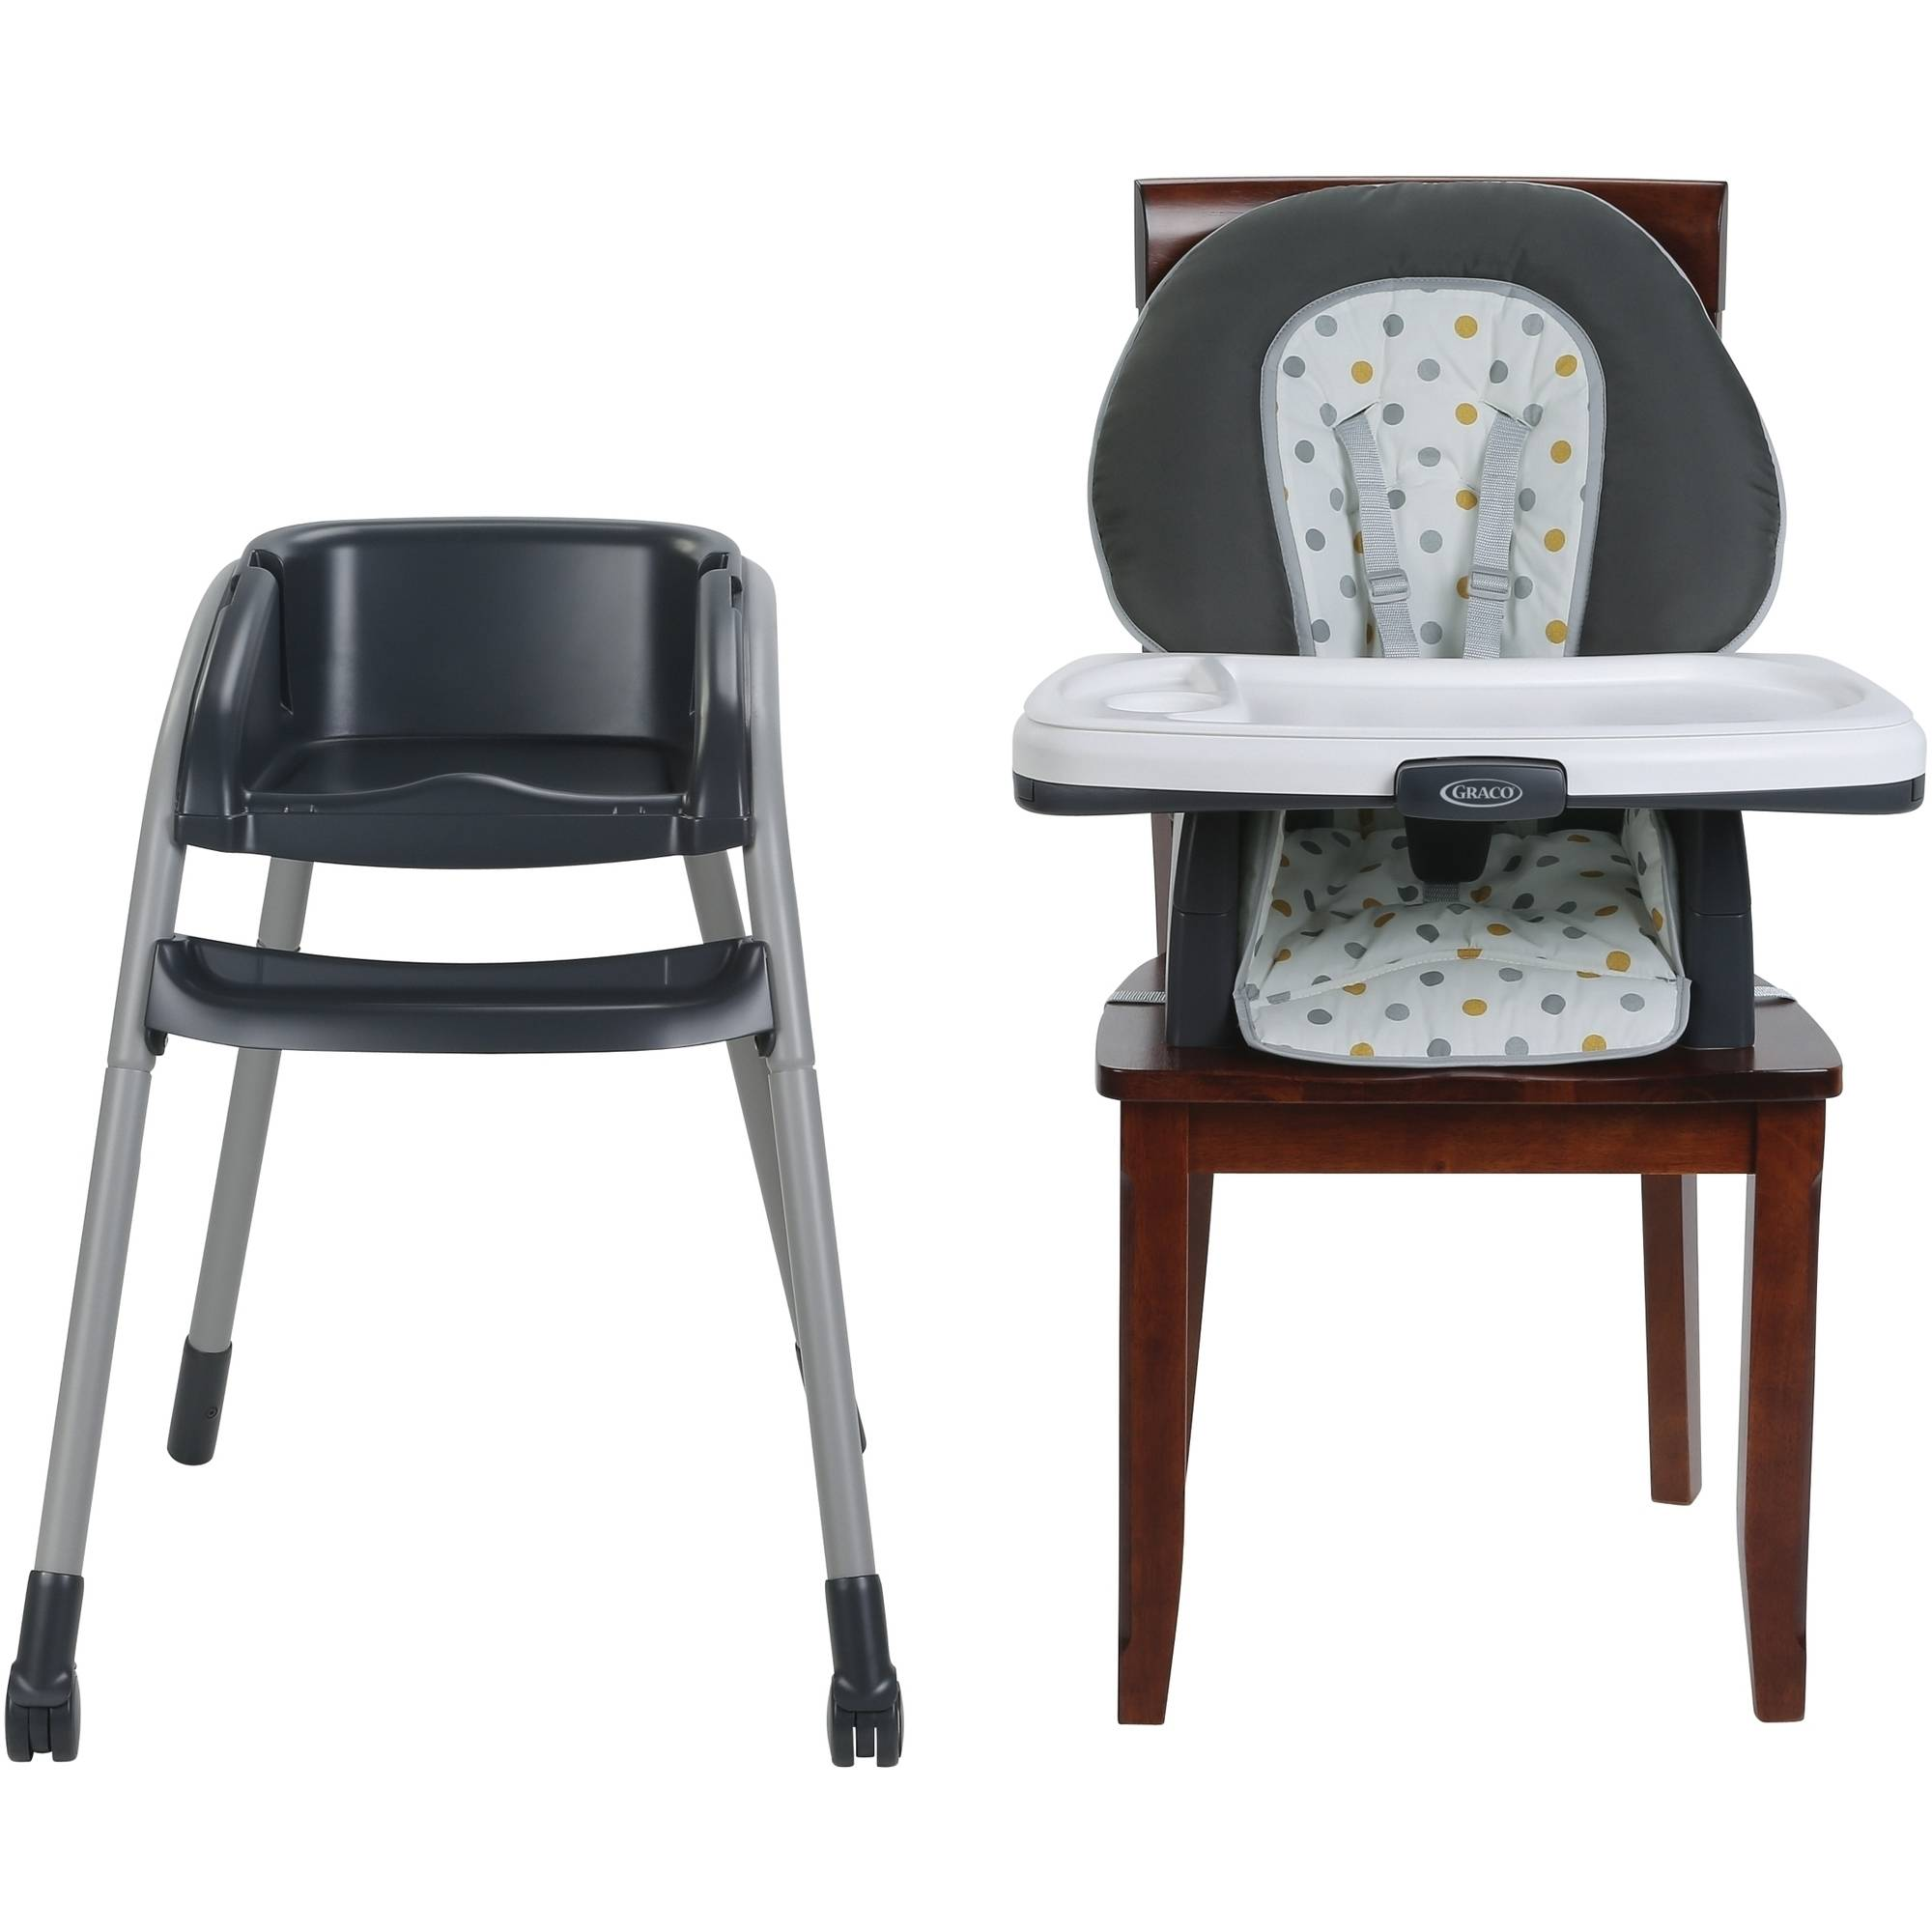 Graco Table 2 Table High Chair Gol Walmart